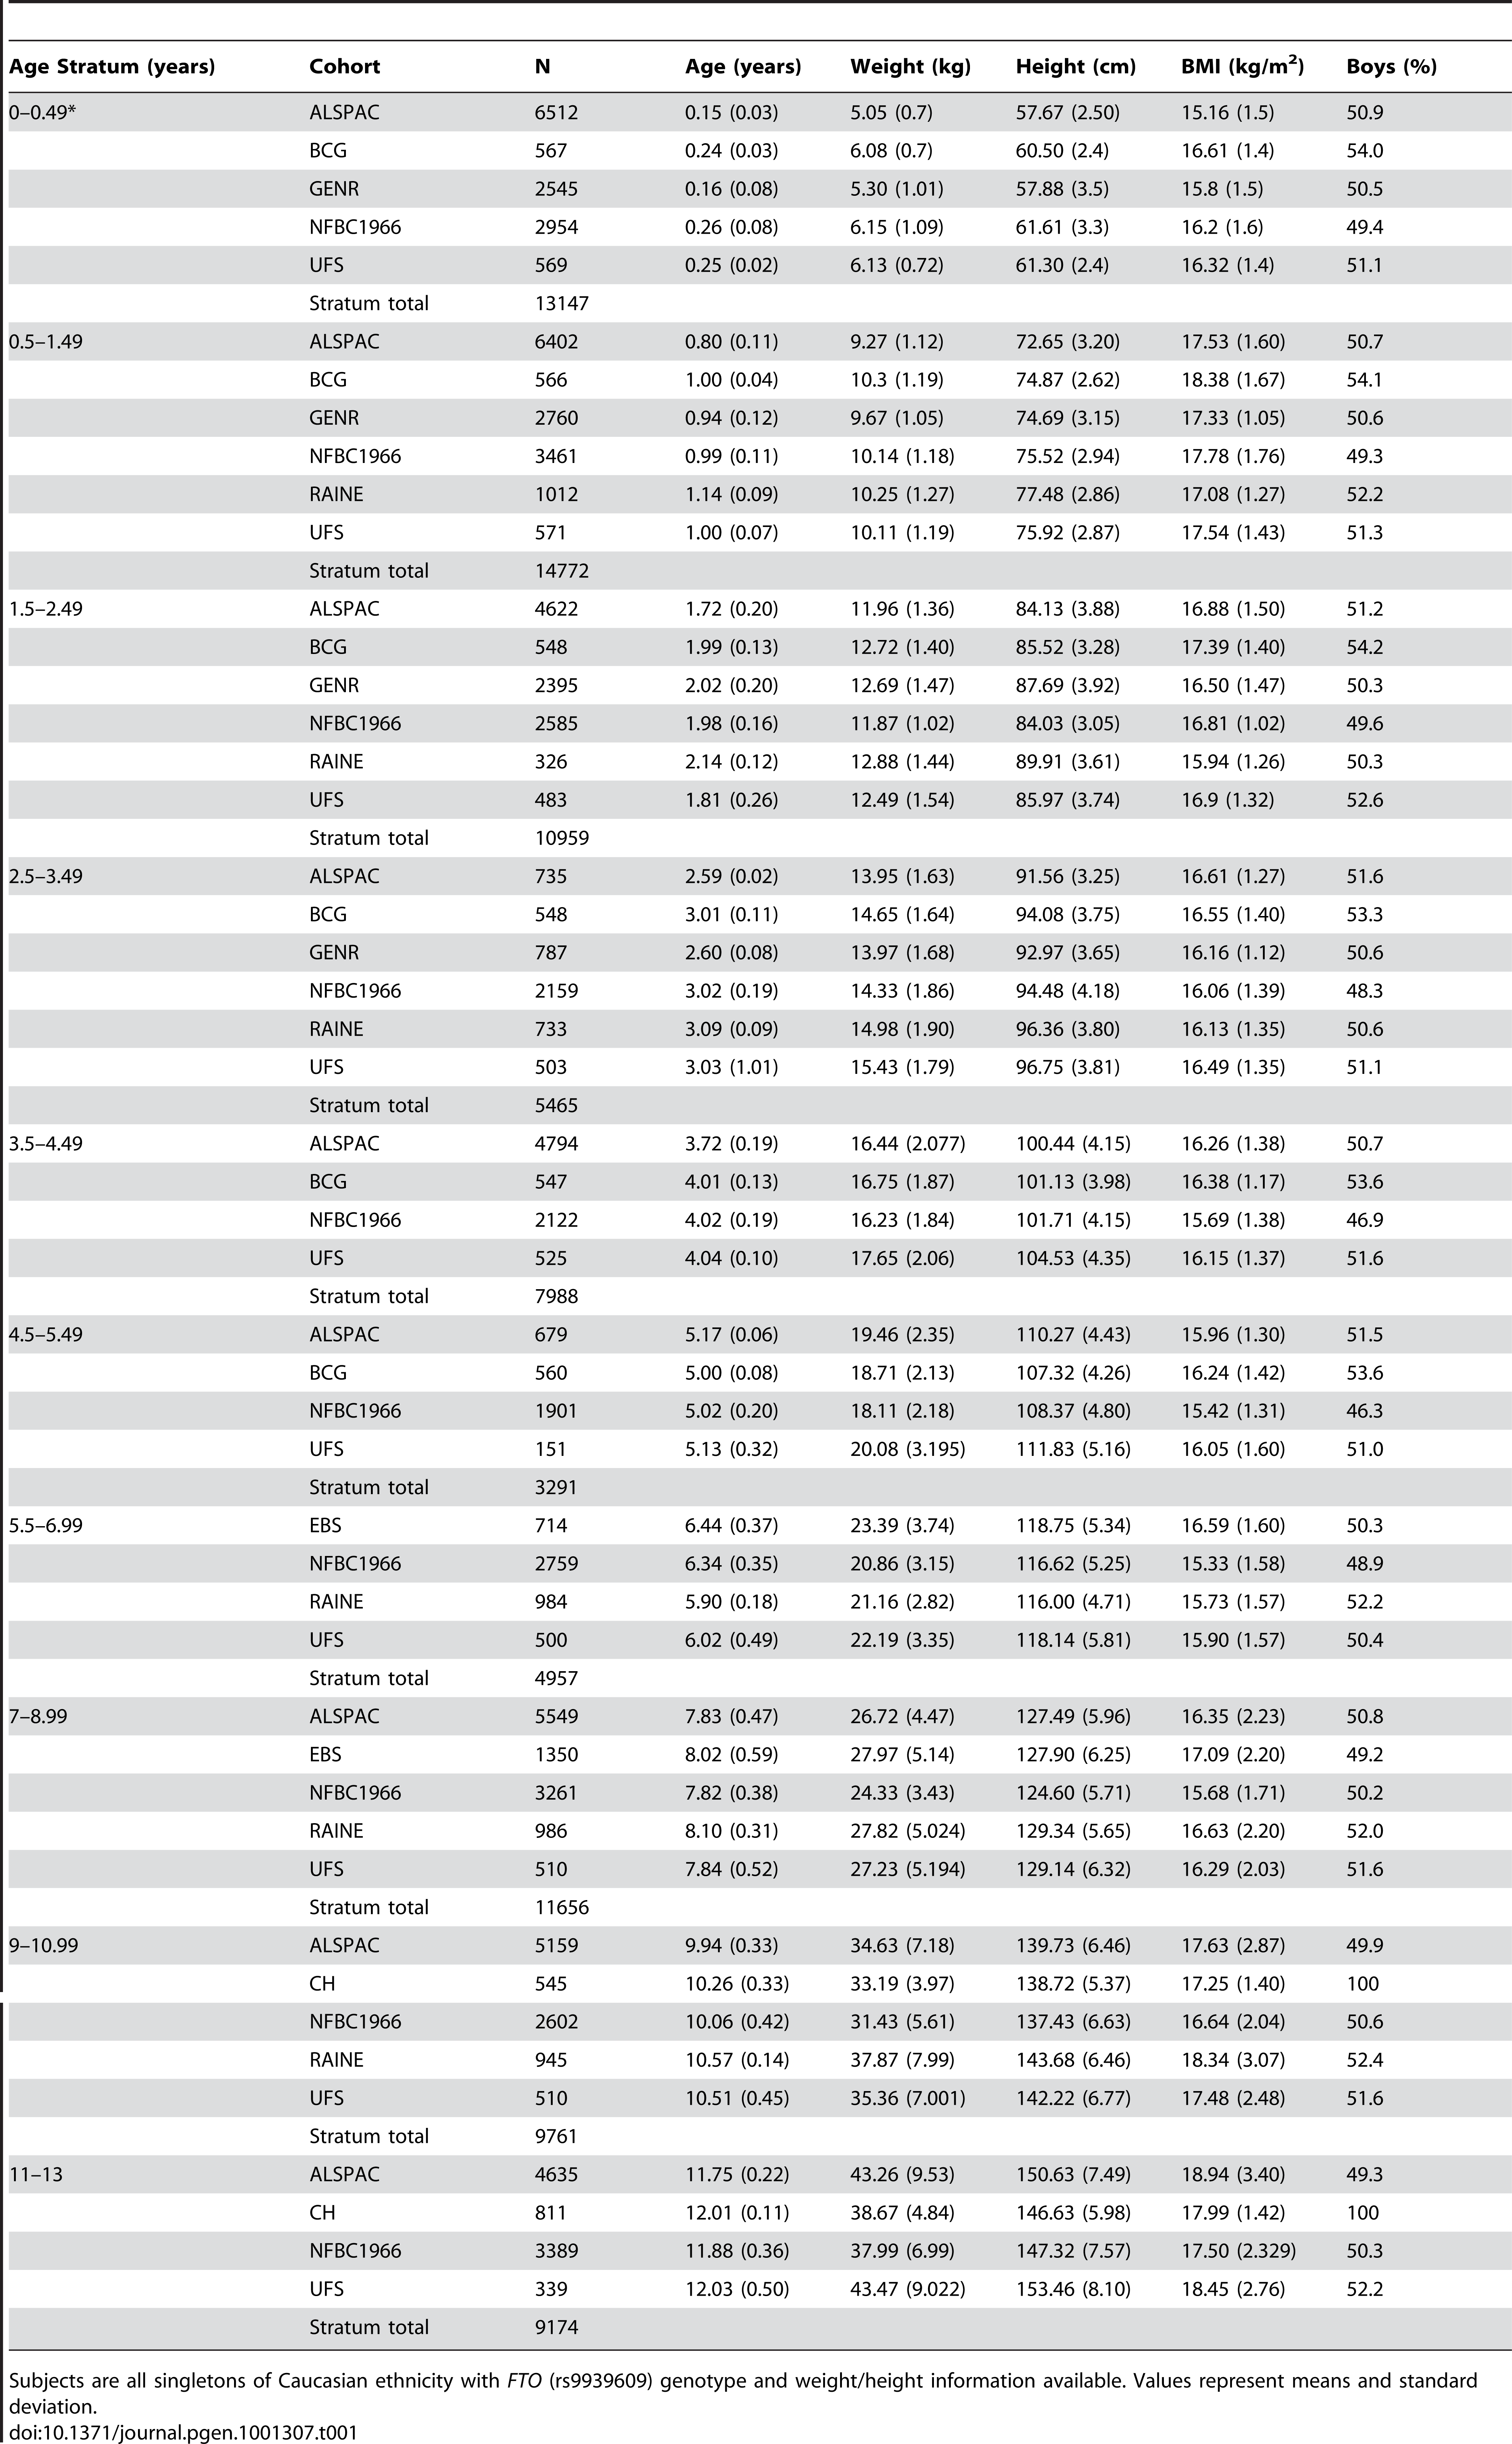 Numbers and characteristics of subjects by cohort and age stratum.